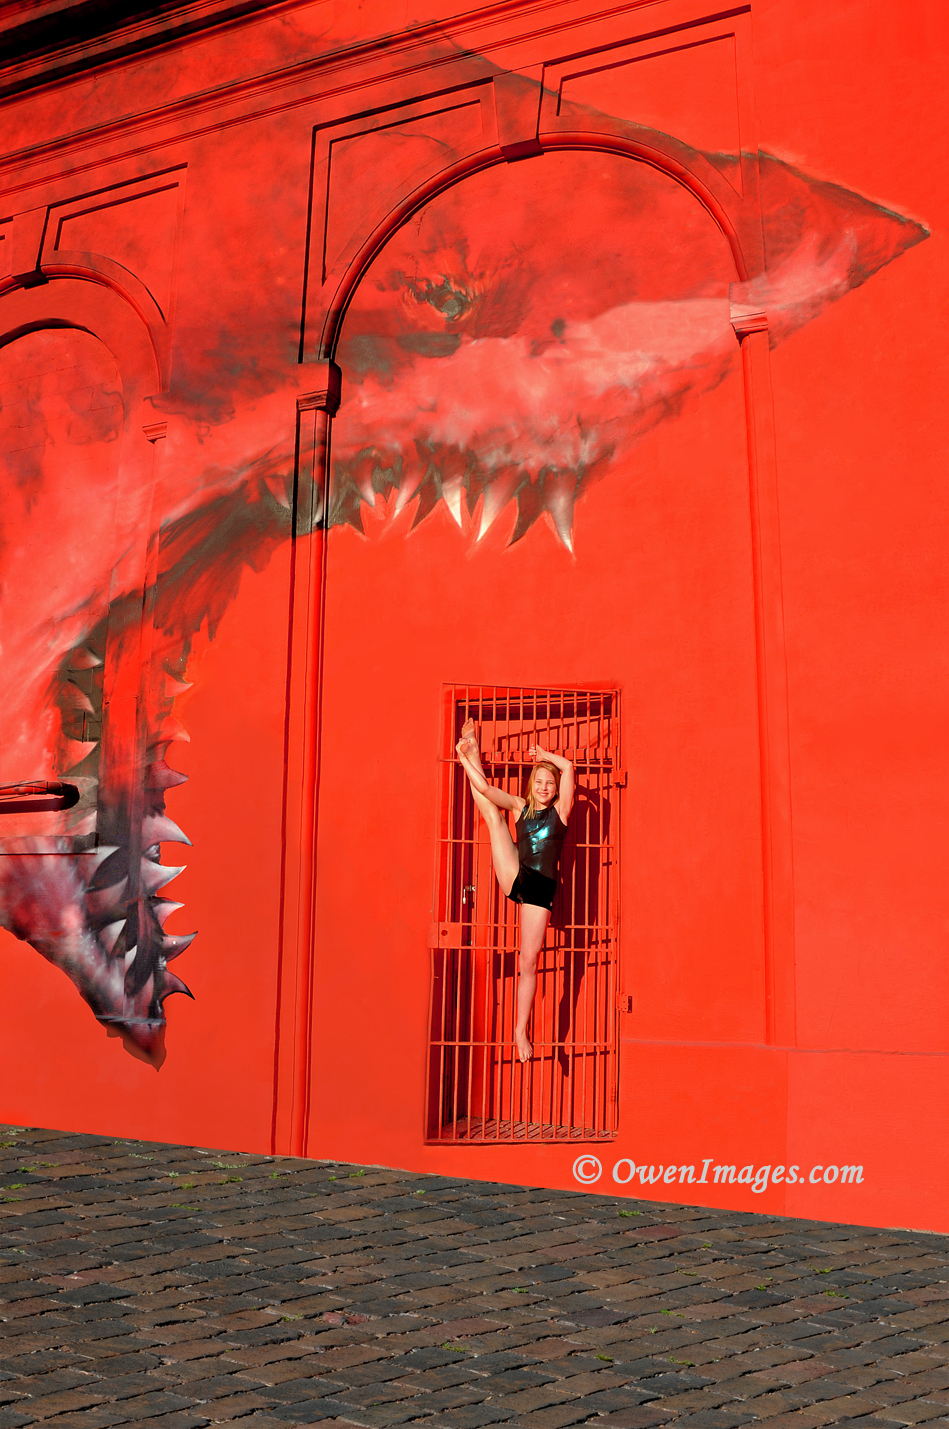 Gymnast 2 about to be eaten by the Shark mural in downtown St Petersburg, Florida